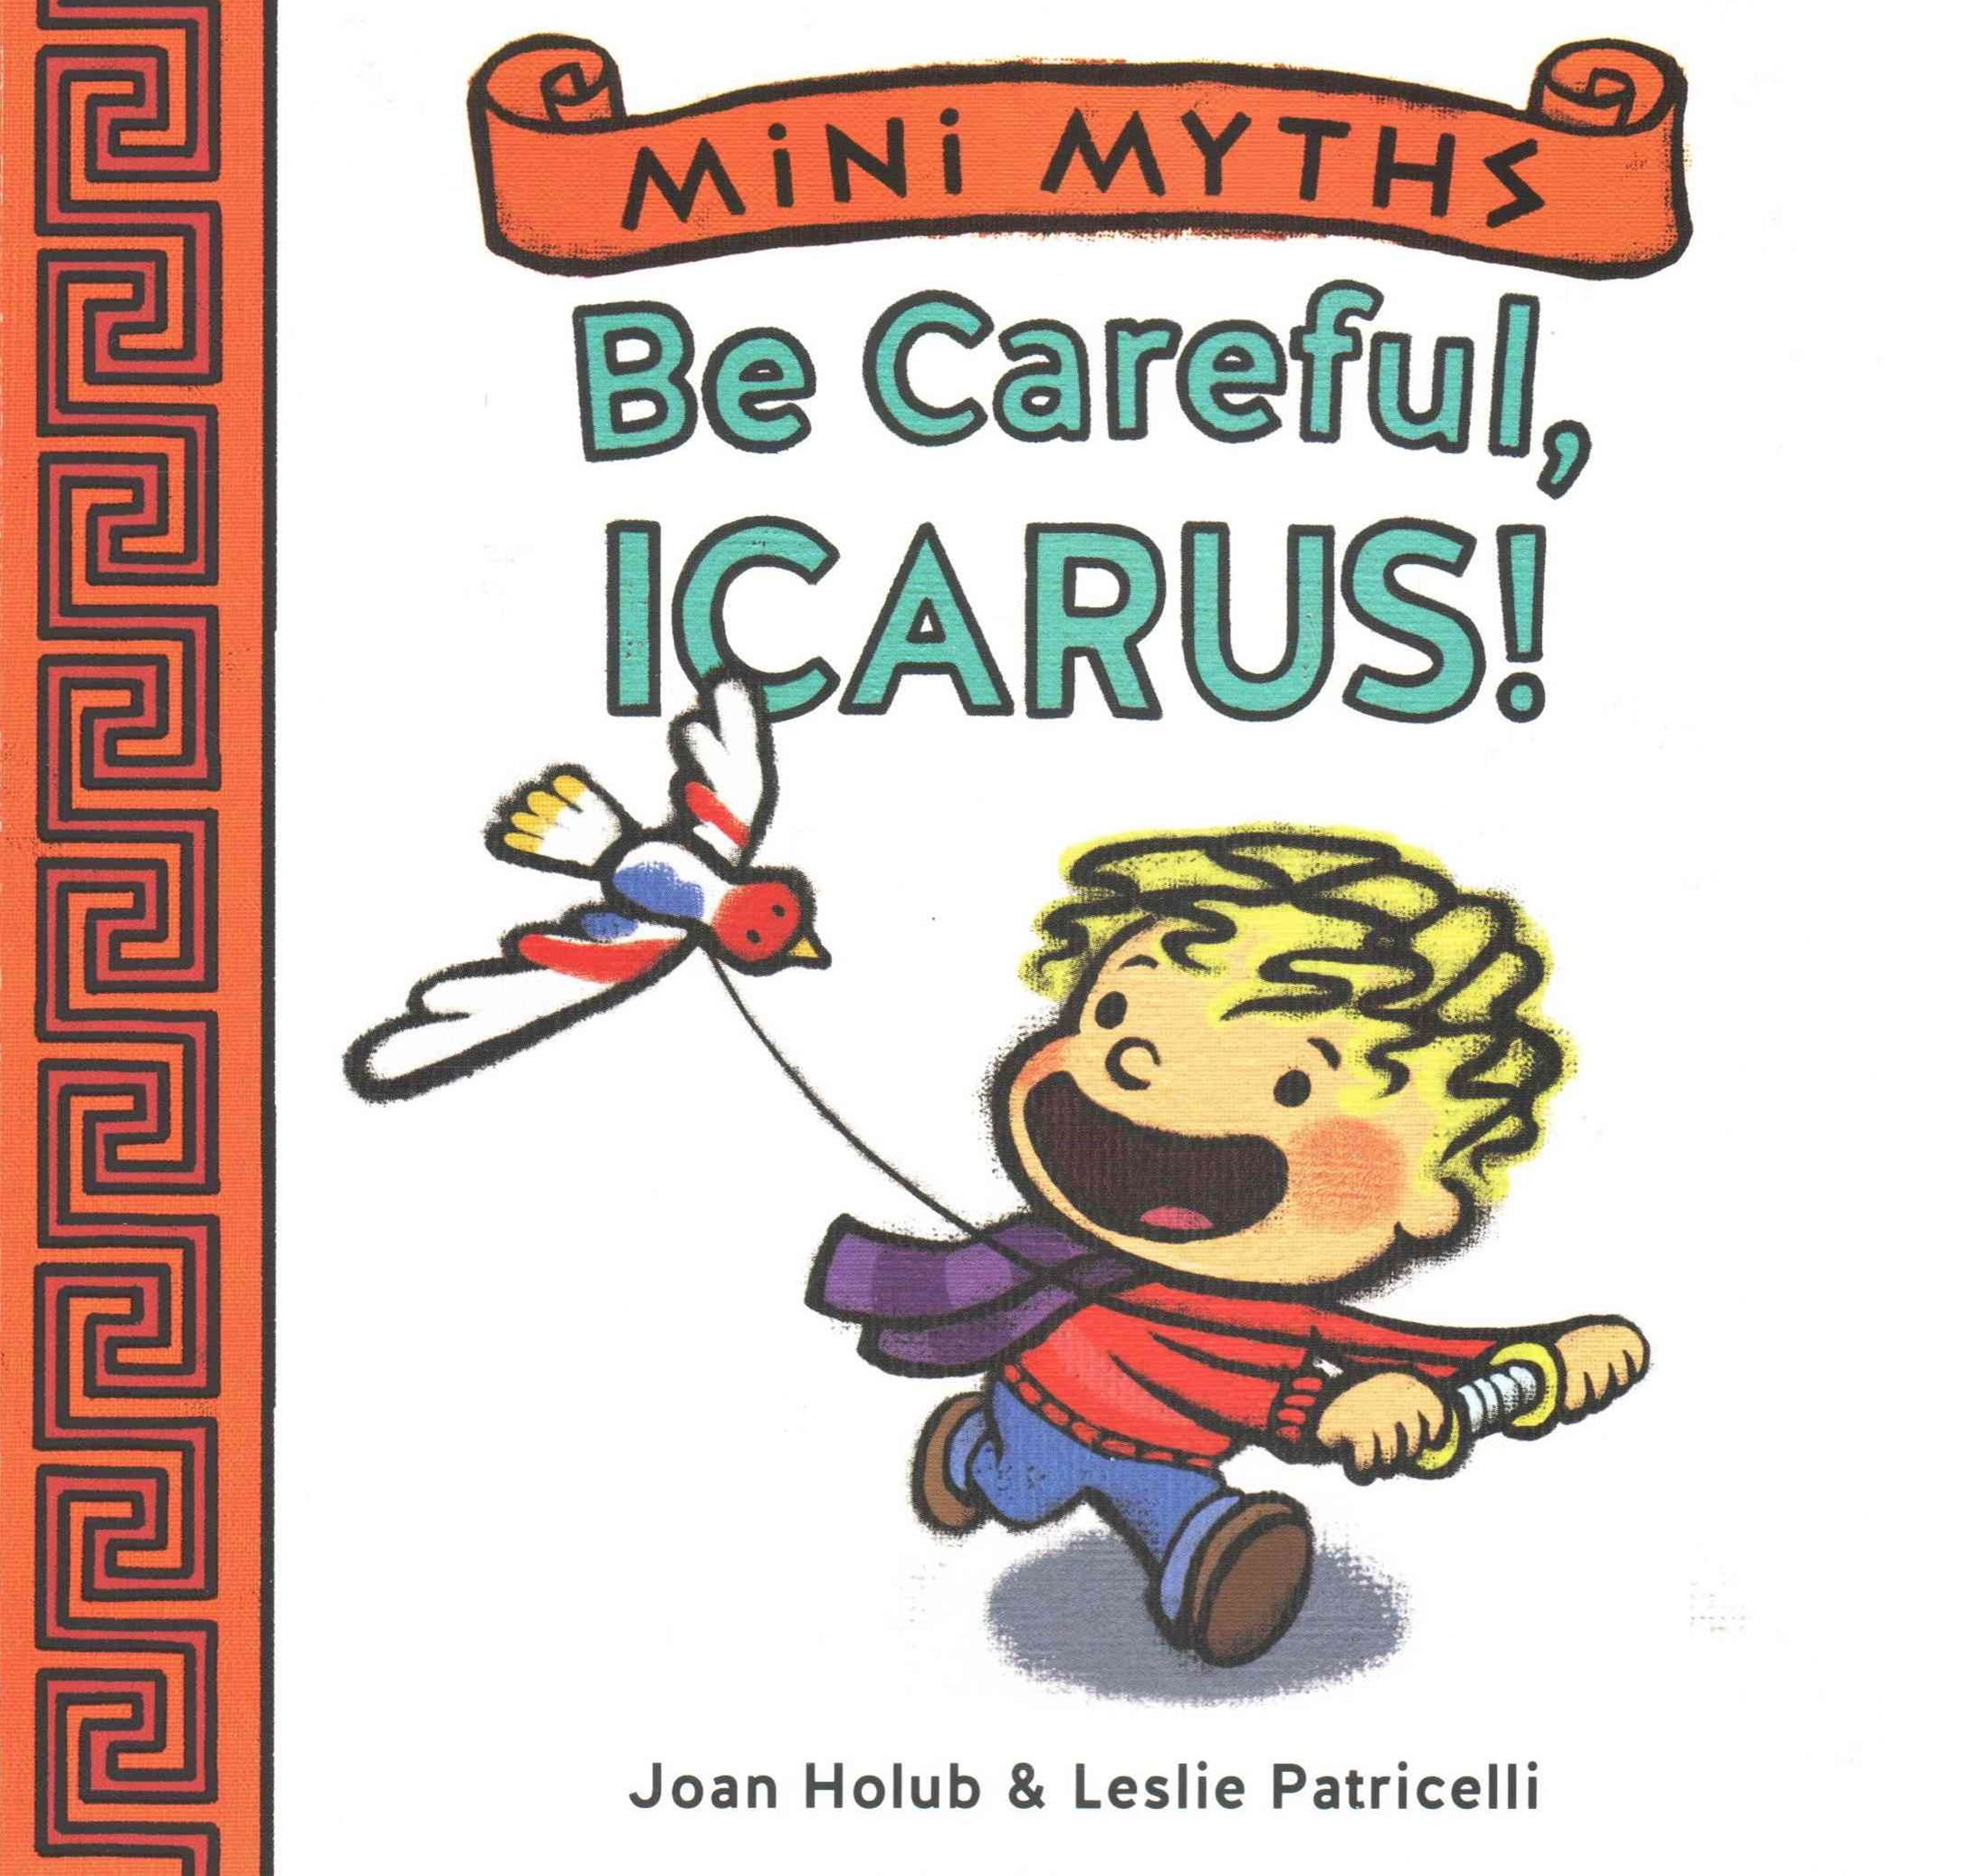 Mini Myths: Be Careful, Icarus!